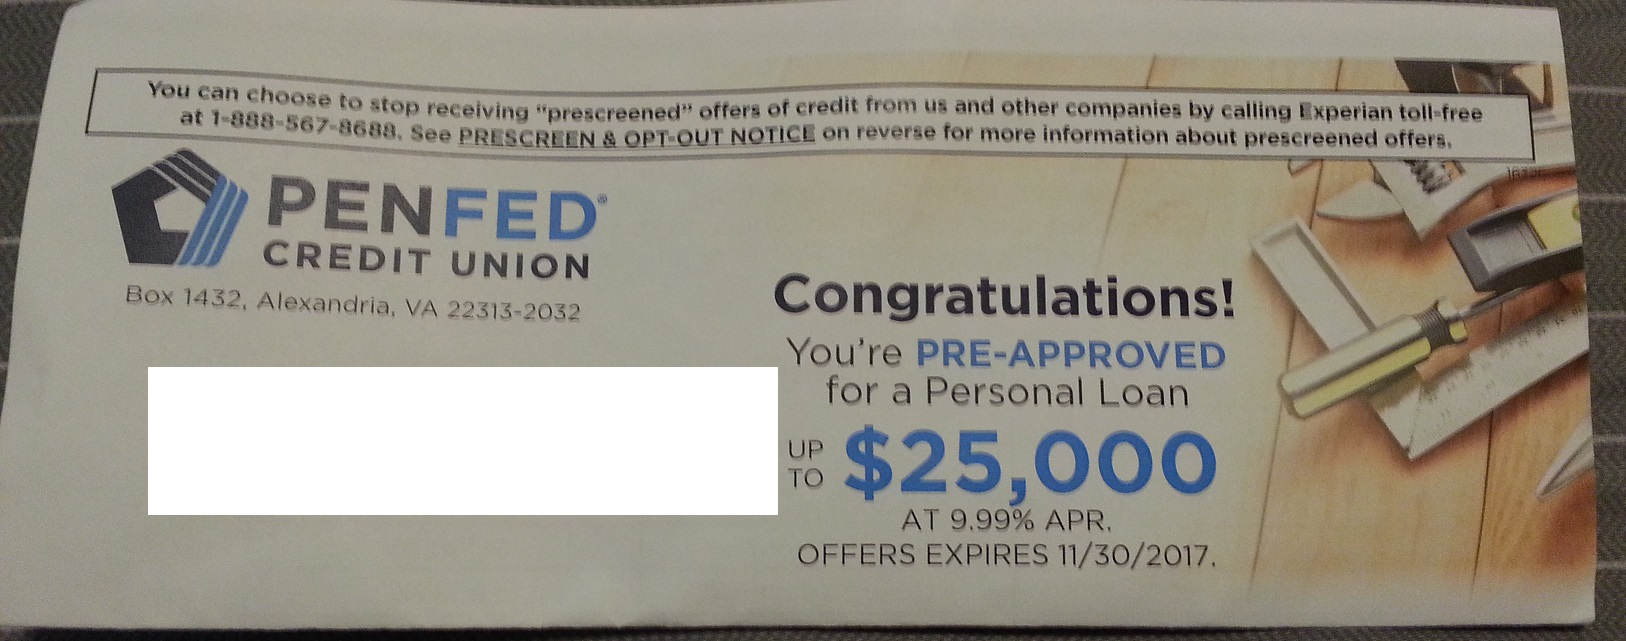 2nd PenFed Preapproval For Personal Loan in 9 Mont